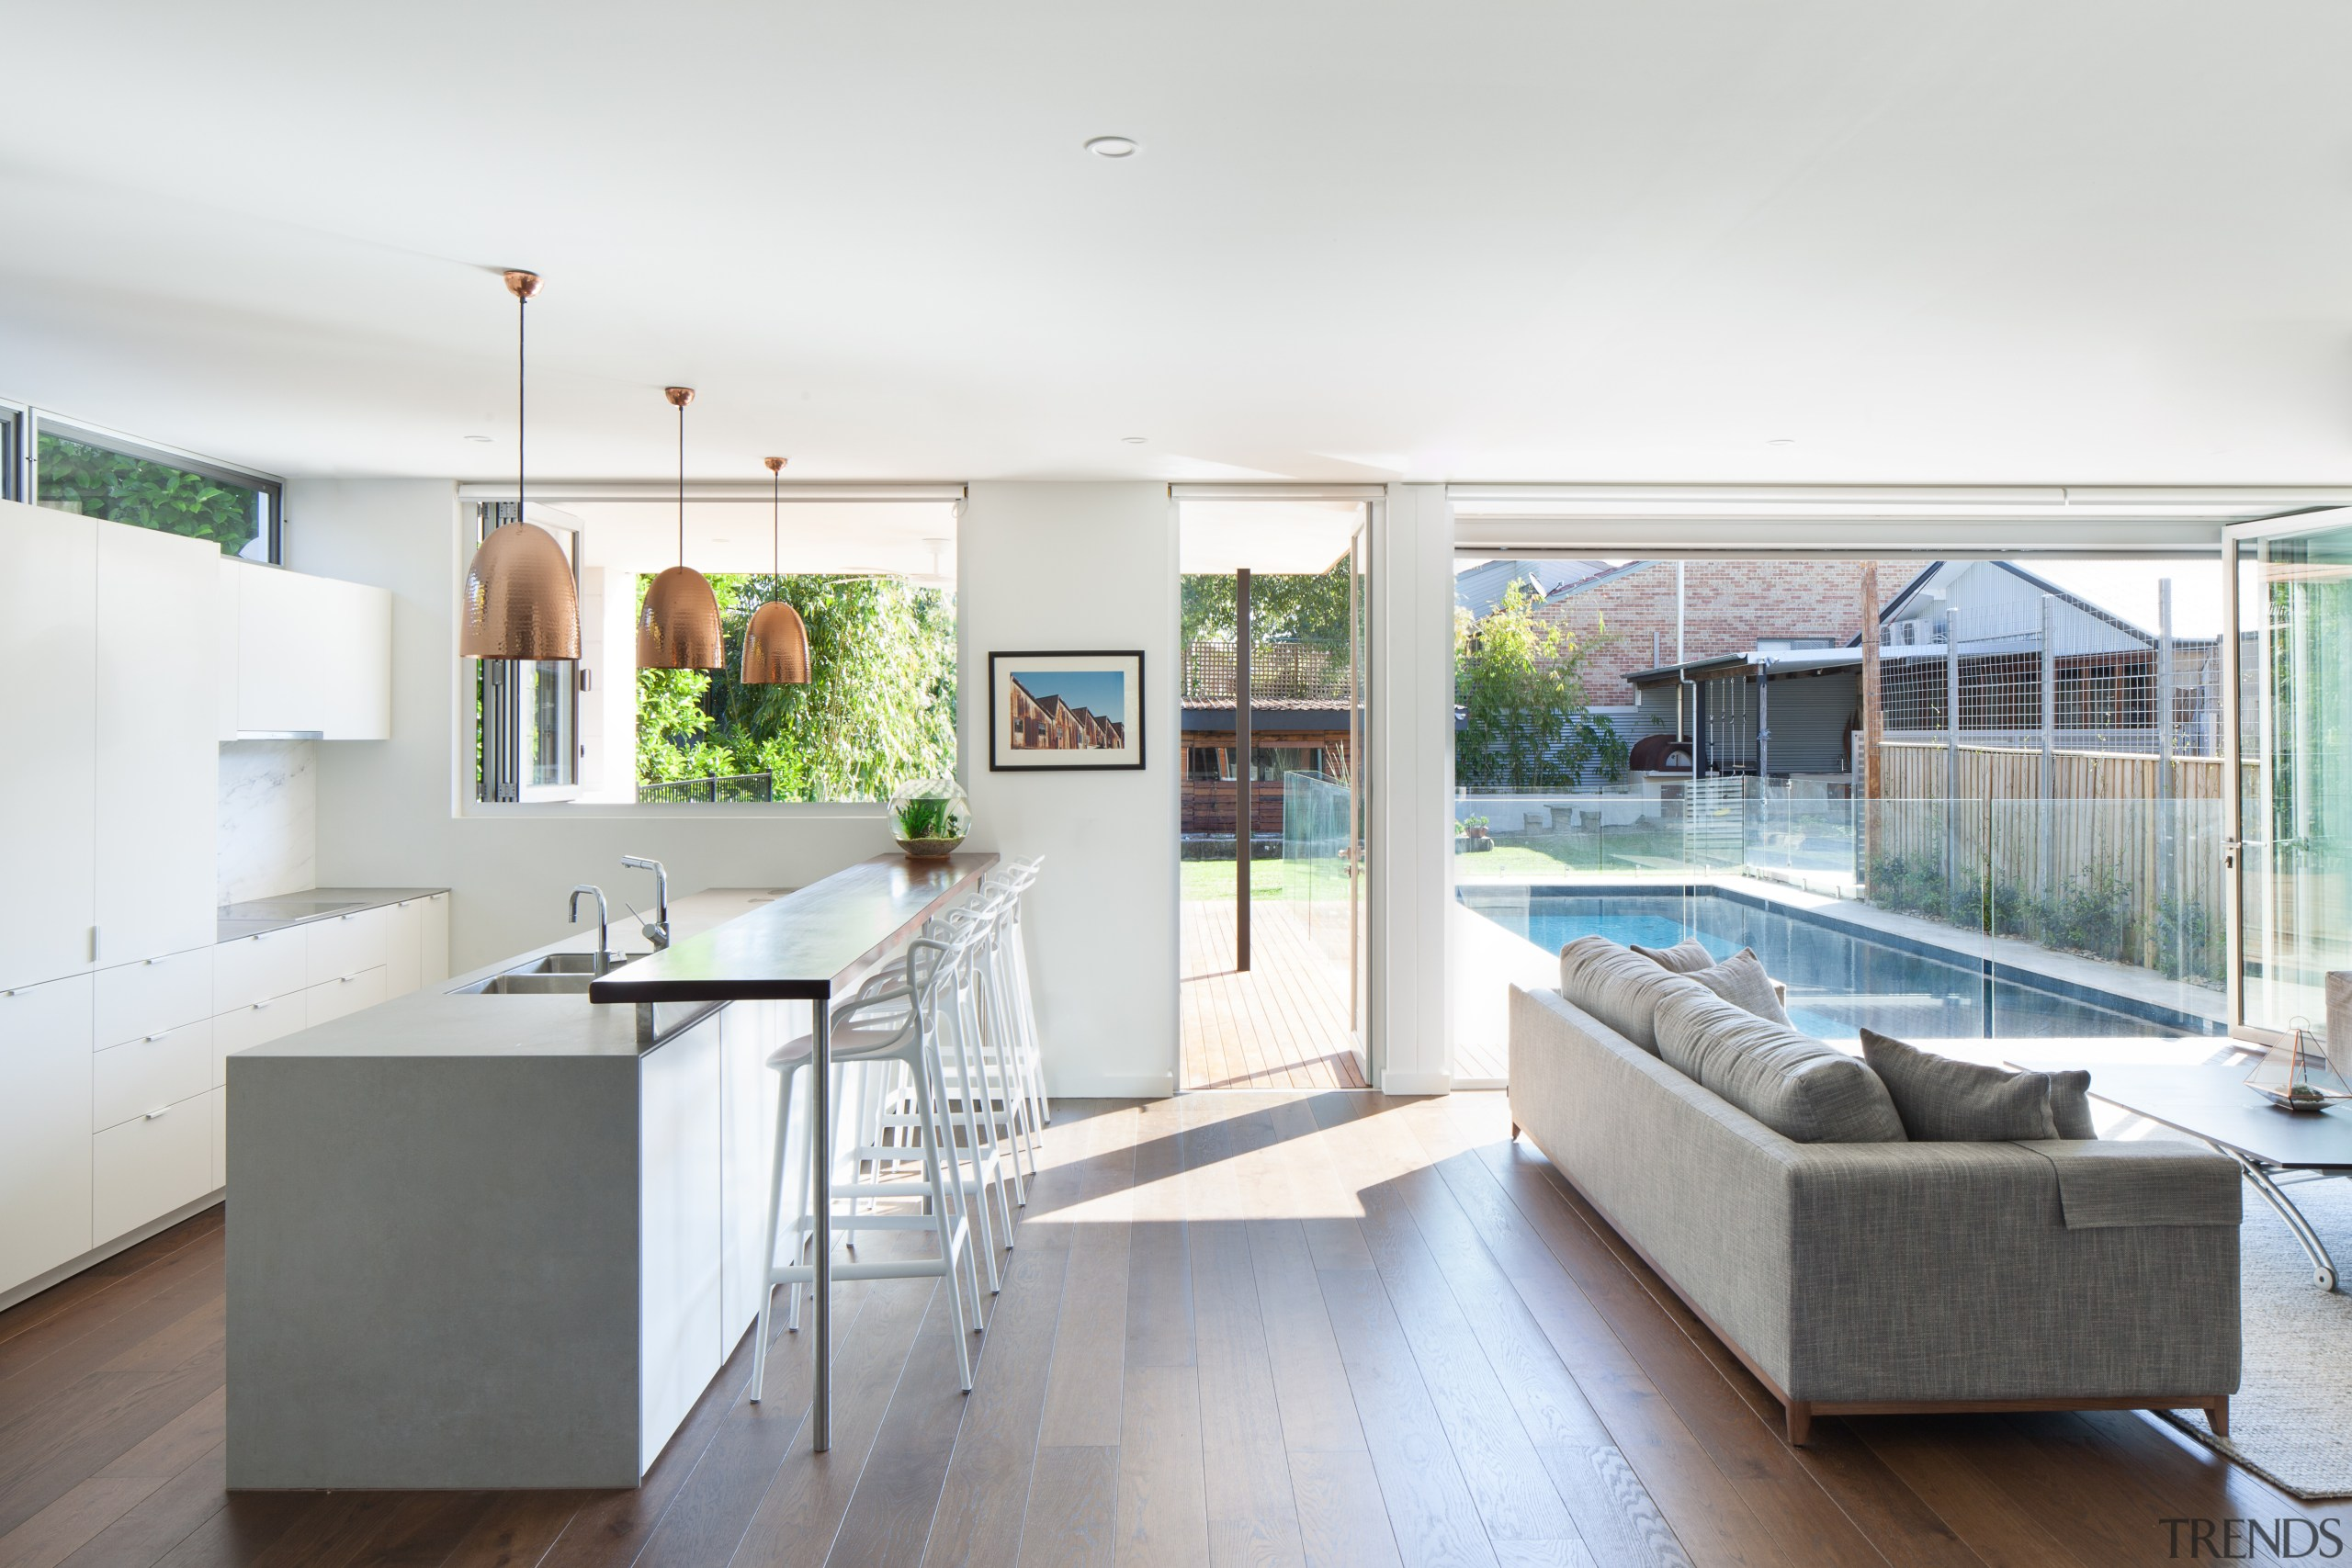 Light-filled and well-connected, this kitchen forms part of apartment, architecture, building, cabinetry, ceiling, countertop, daylighting, design, floor, flooring, furniture, hardwood, home, house, interior design, kitchen, living room, loft, property, real estate, residential area, roof, room, table, window, wood flooring, white